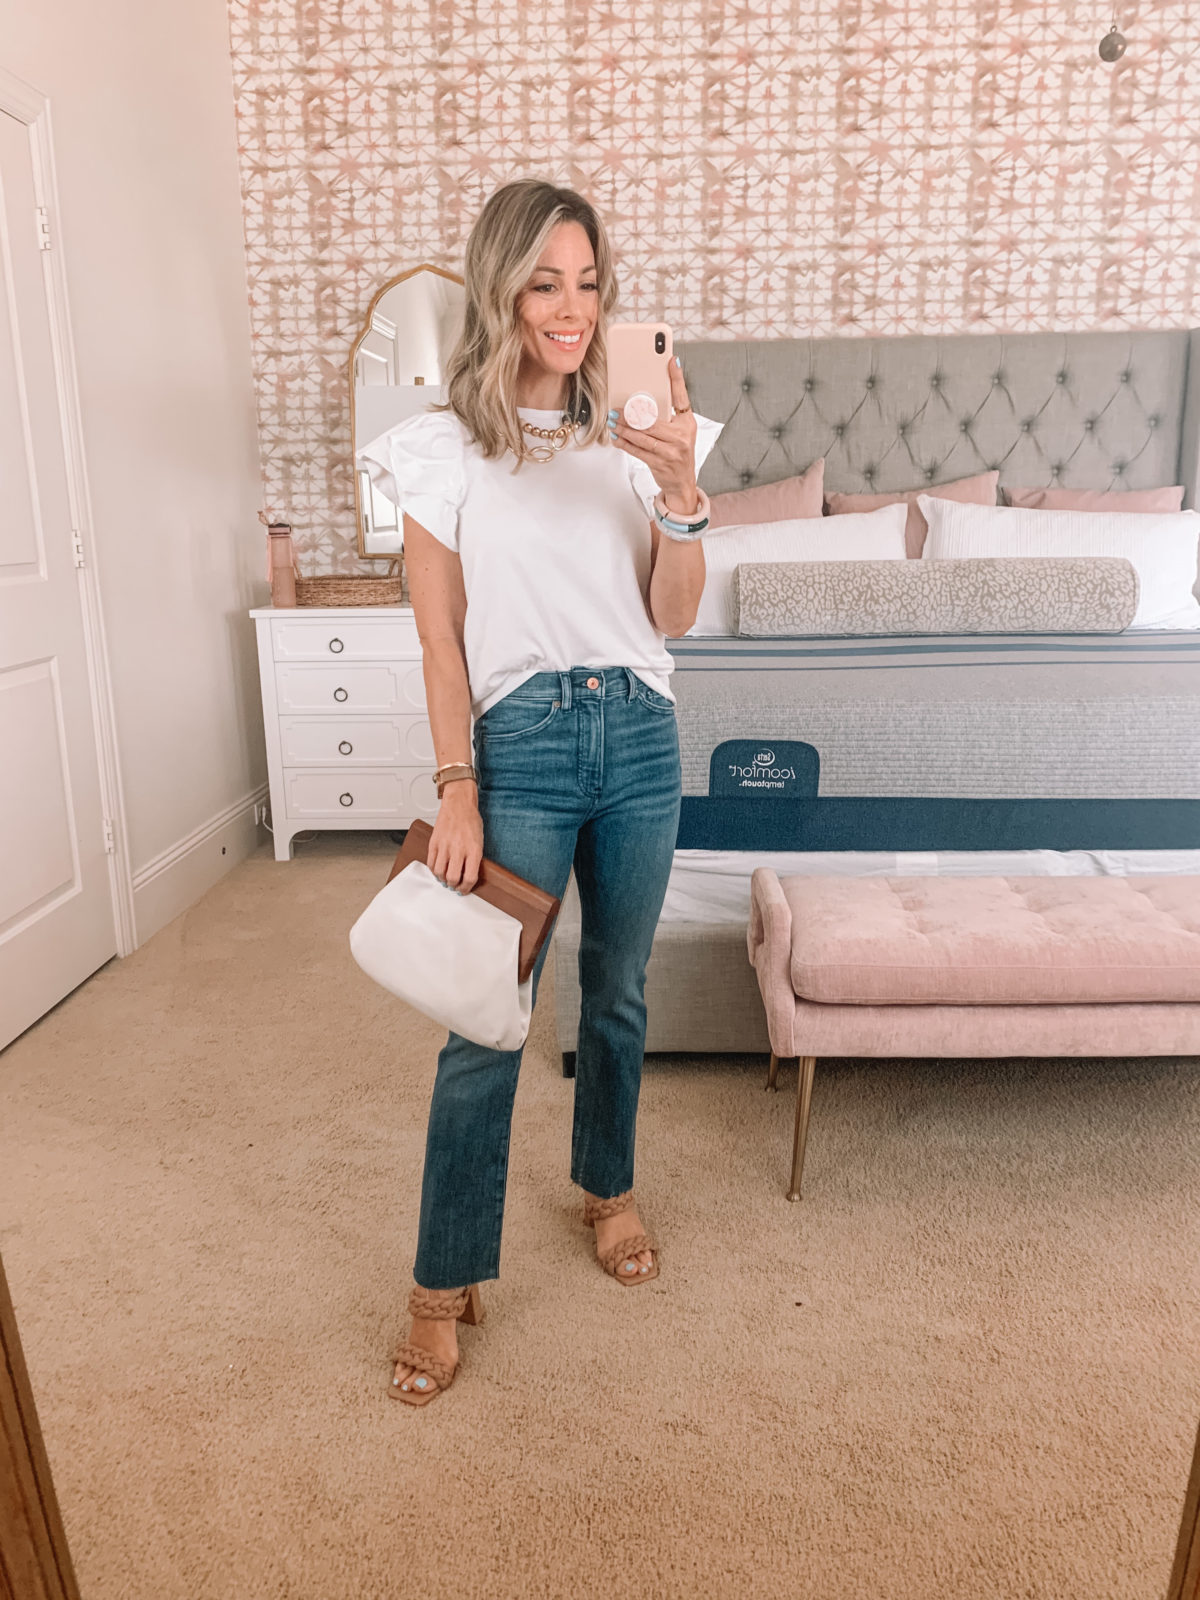 Dressing Room Finds, Express, Ruffle Sleeve Tee, Jeans, Sandals, clutch